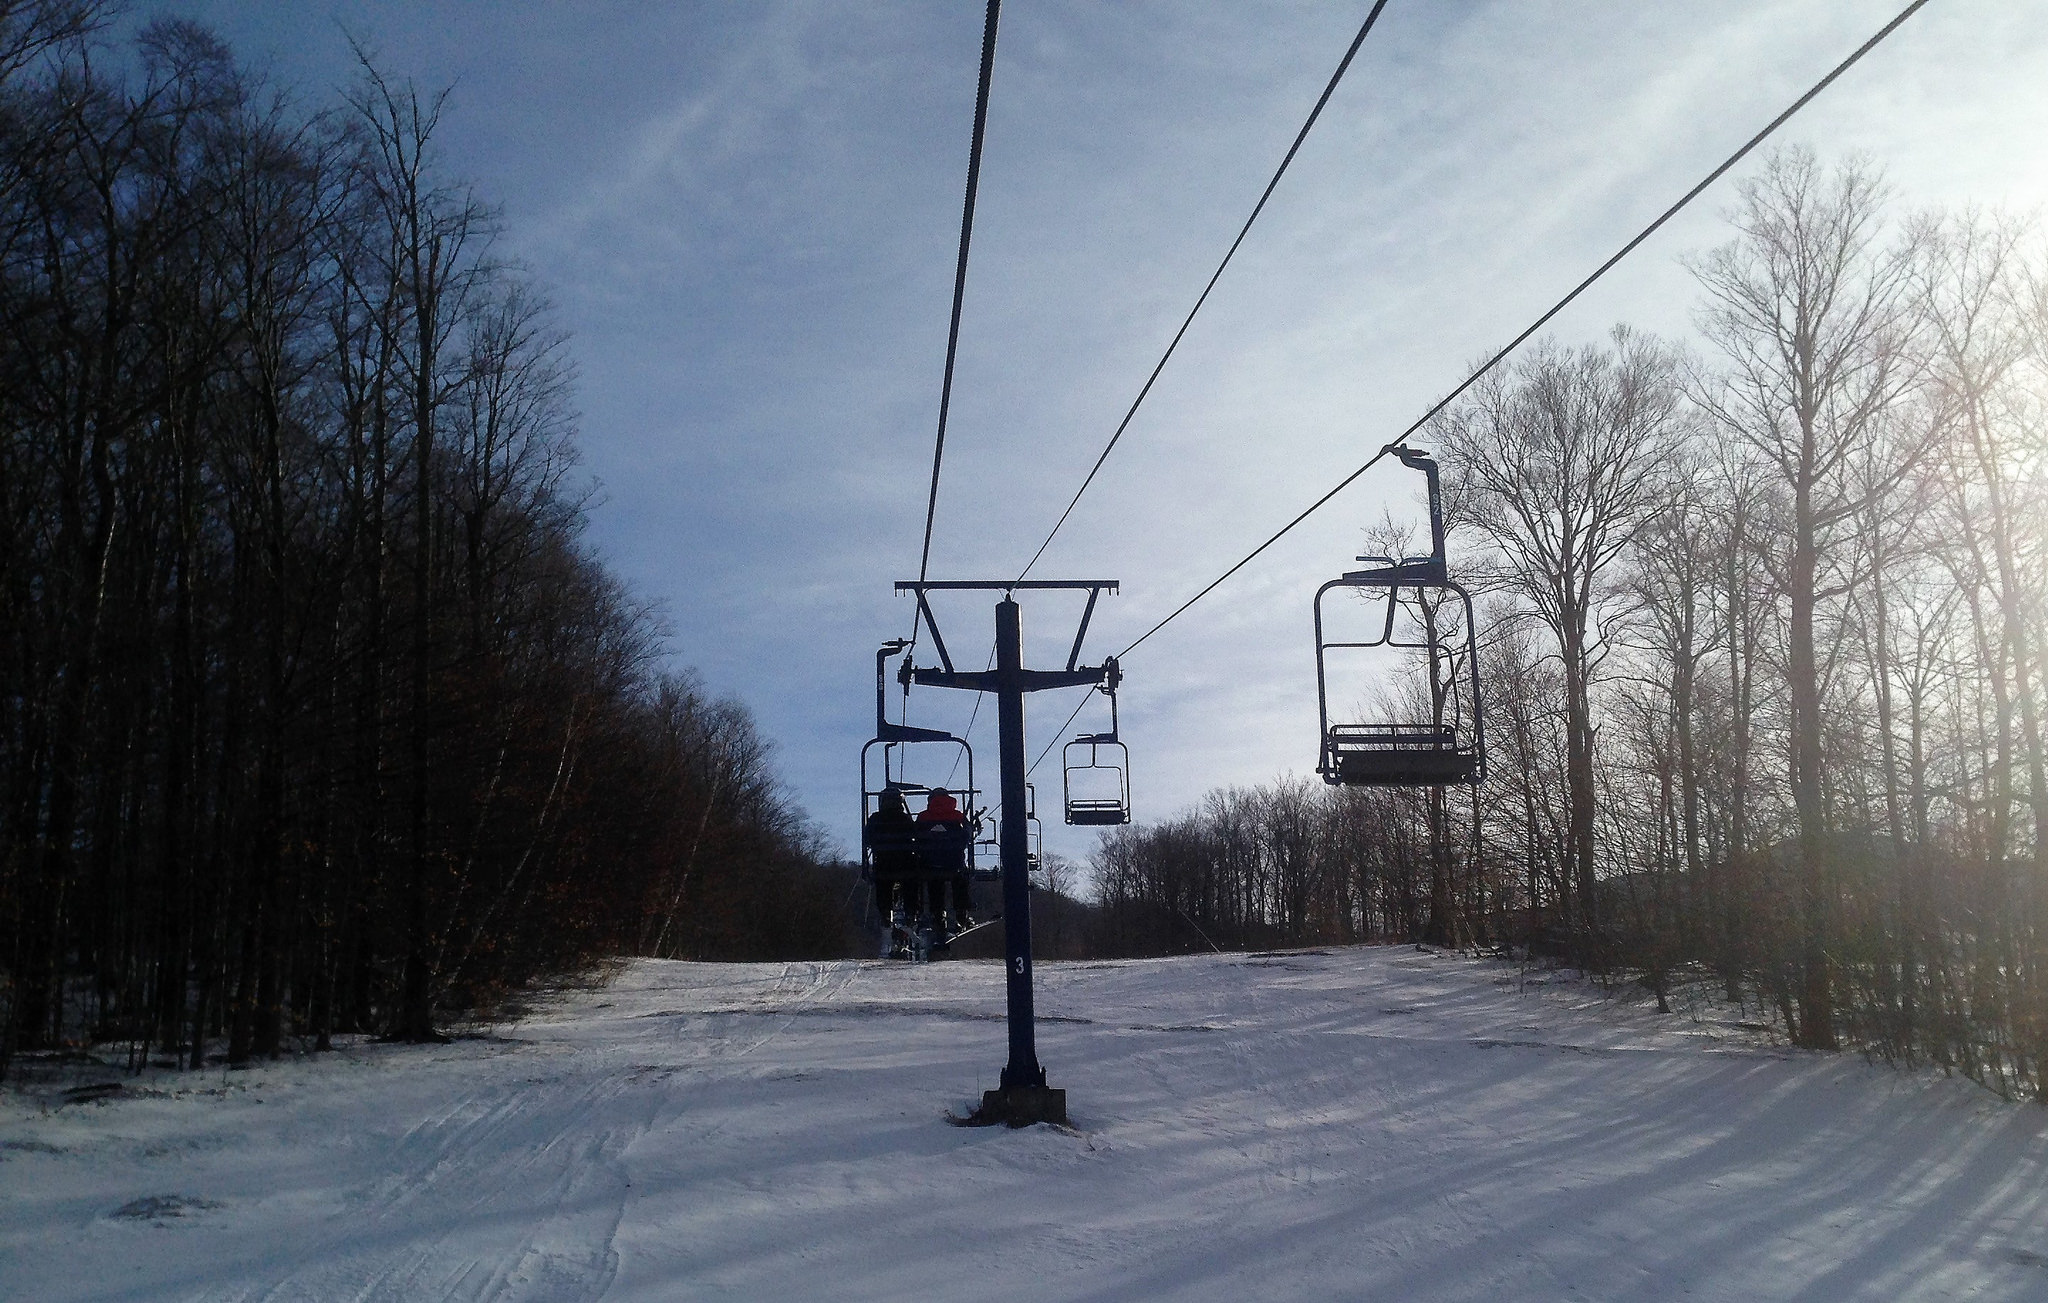 ski lift, vermont ski resort